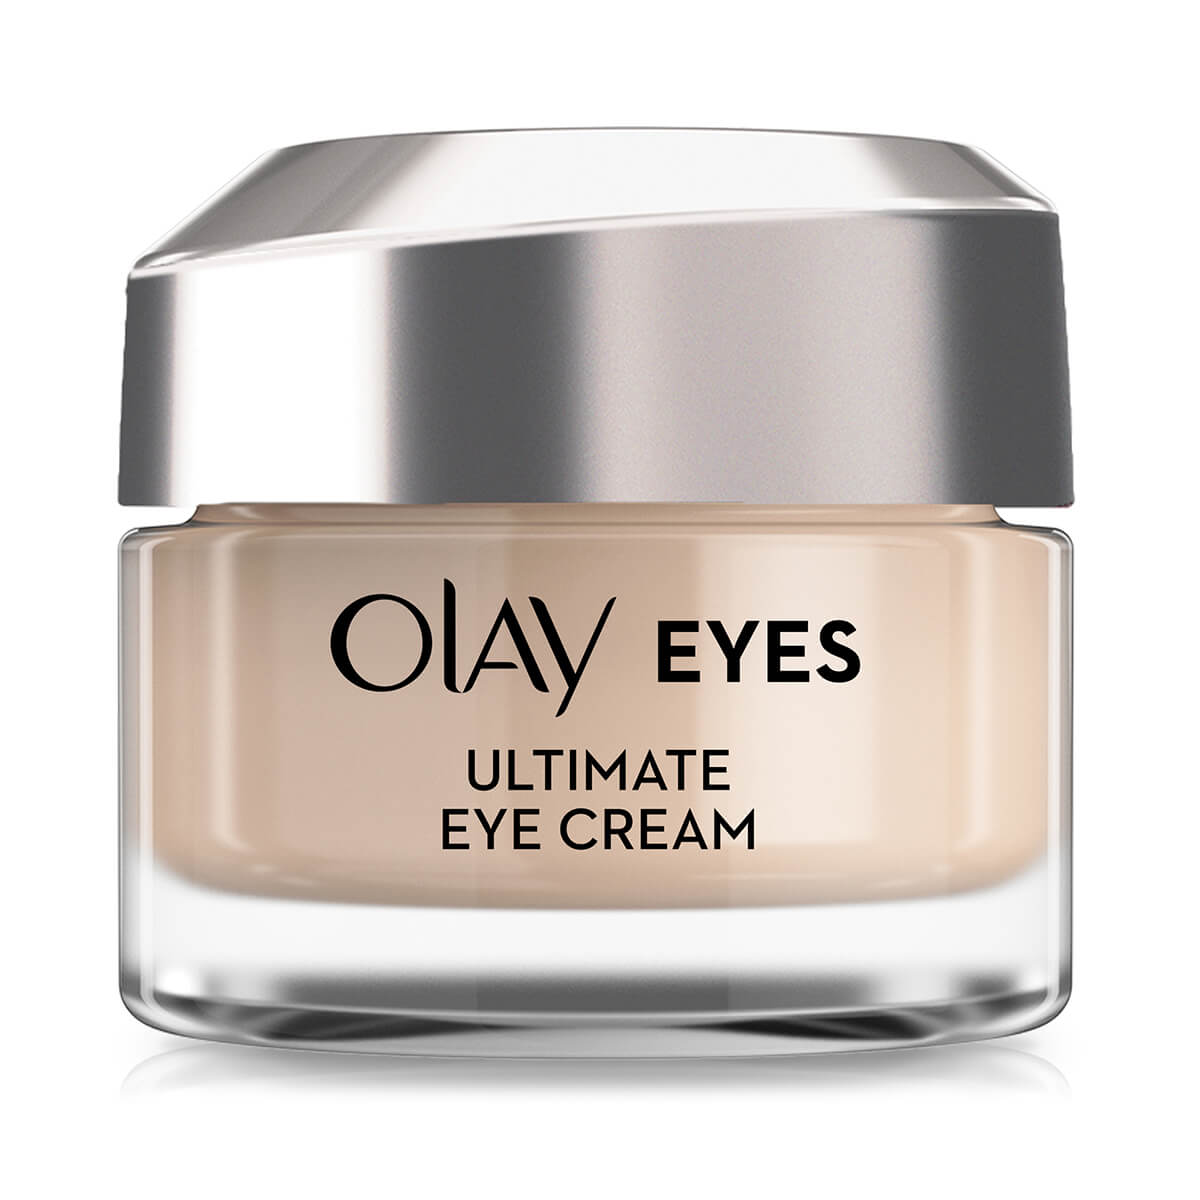 Olay Eyes Ultimate Eye Cream for Wrinkles, Puffy Eyes and Dark Circles 15 ml